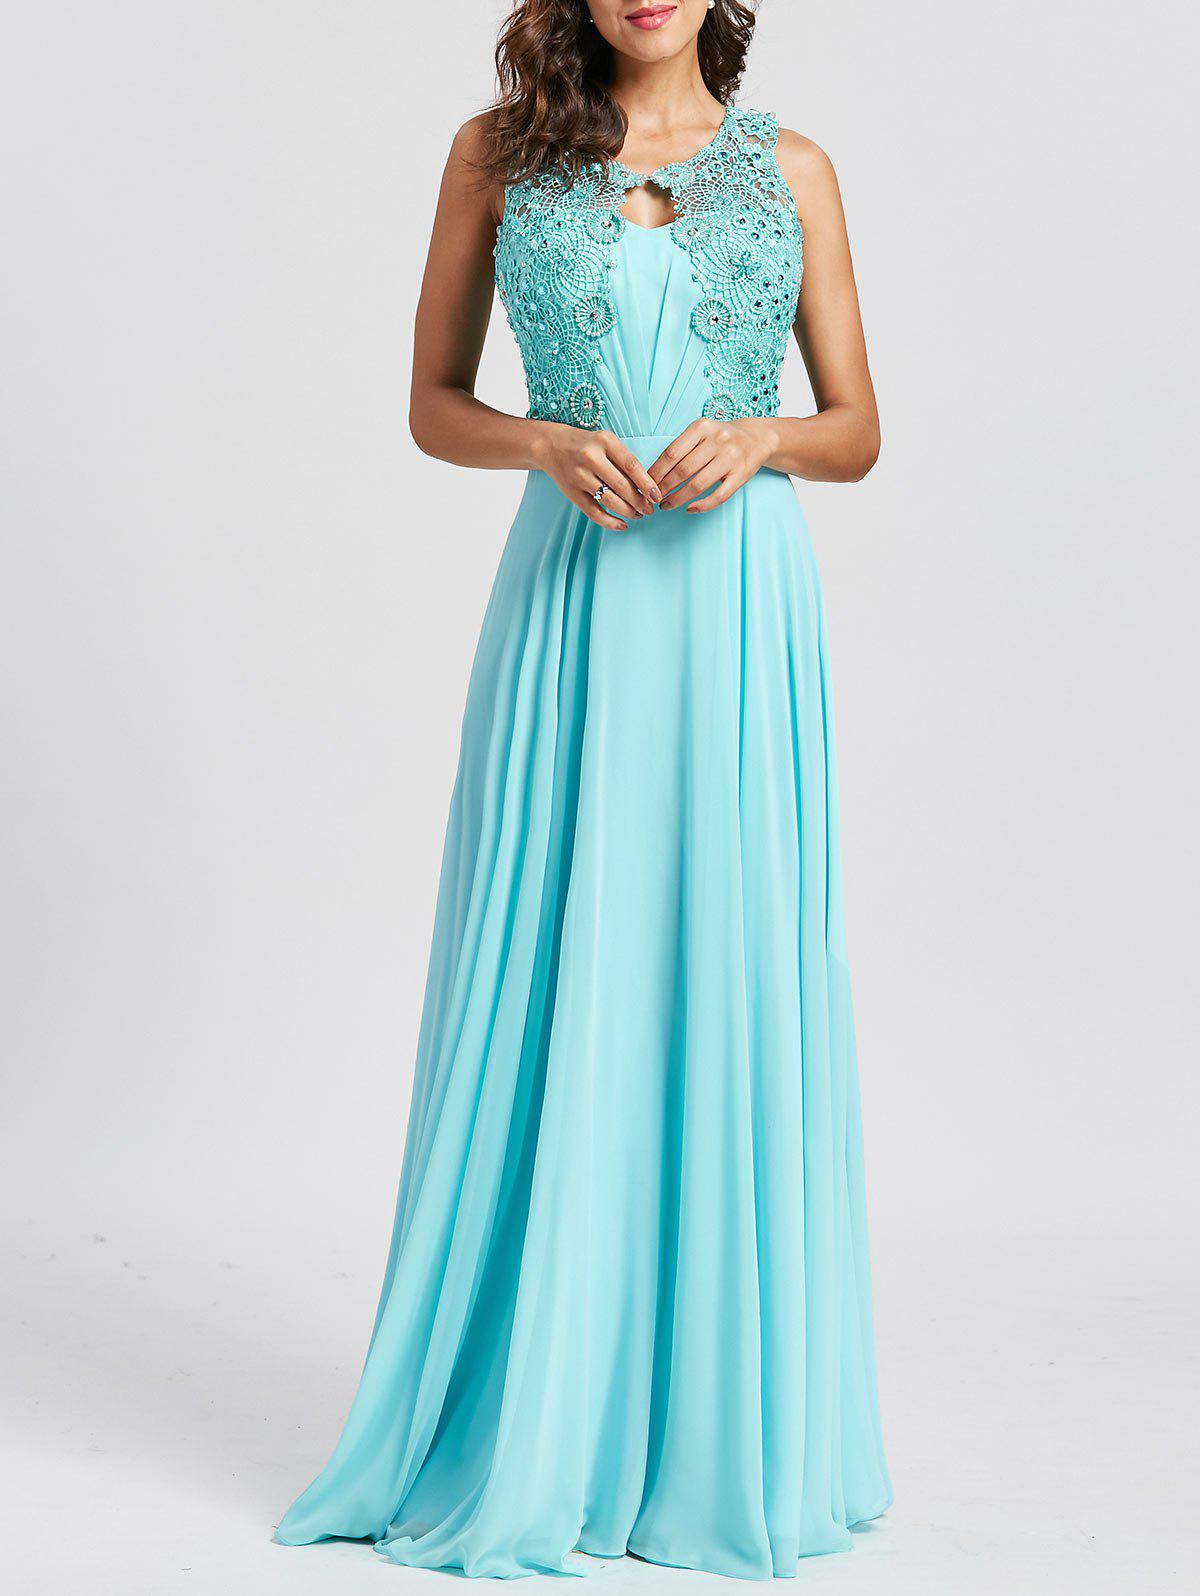 Rhinestone Embellished Floral Lace Keyhole Evening Dress - LAKE BLUE 2XL